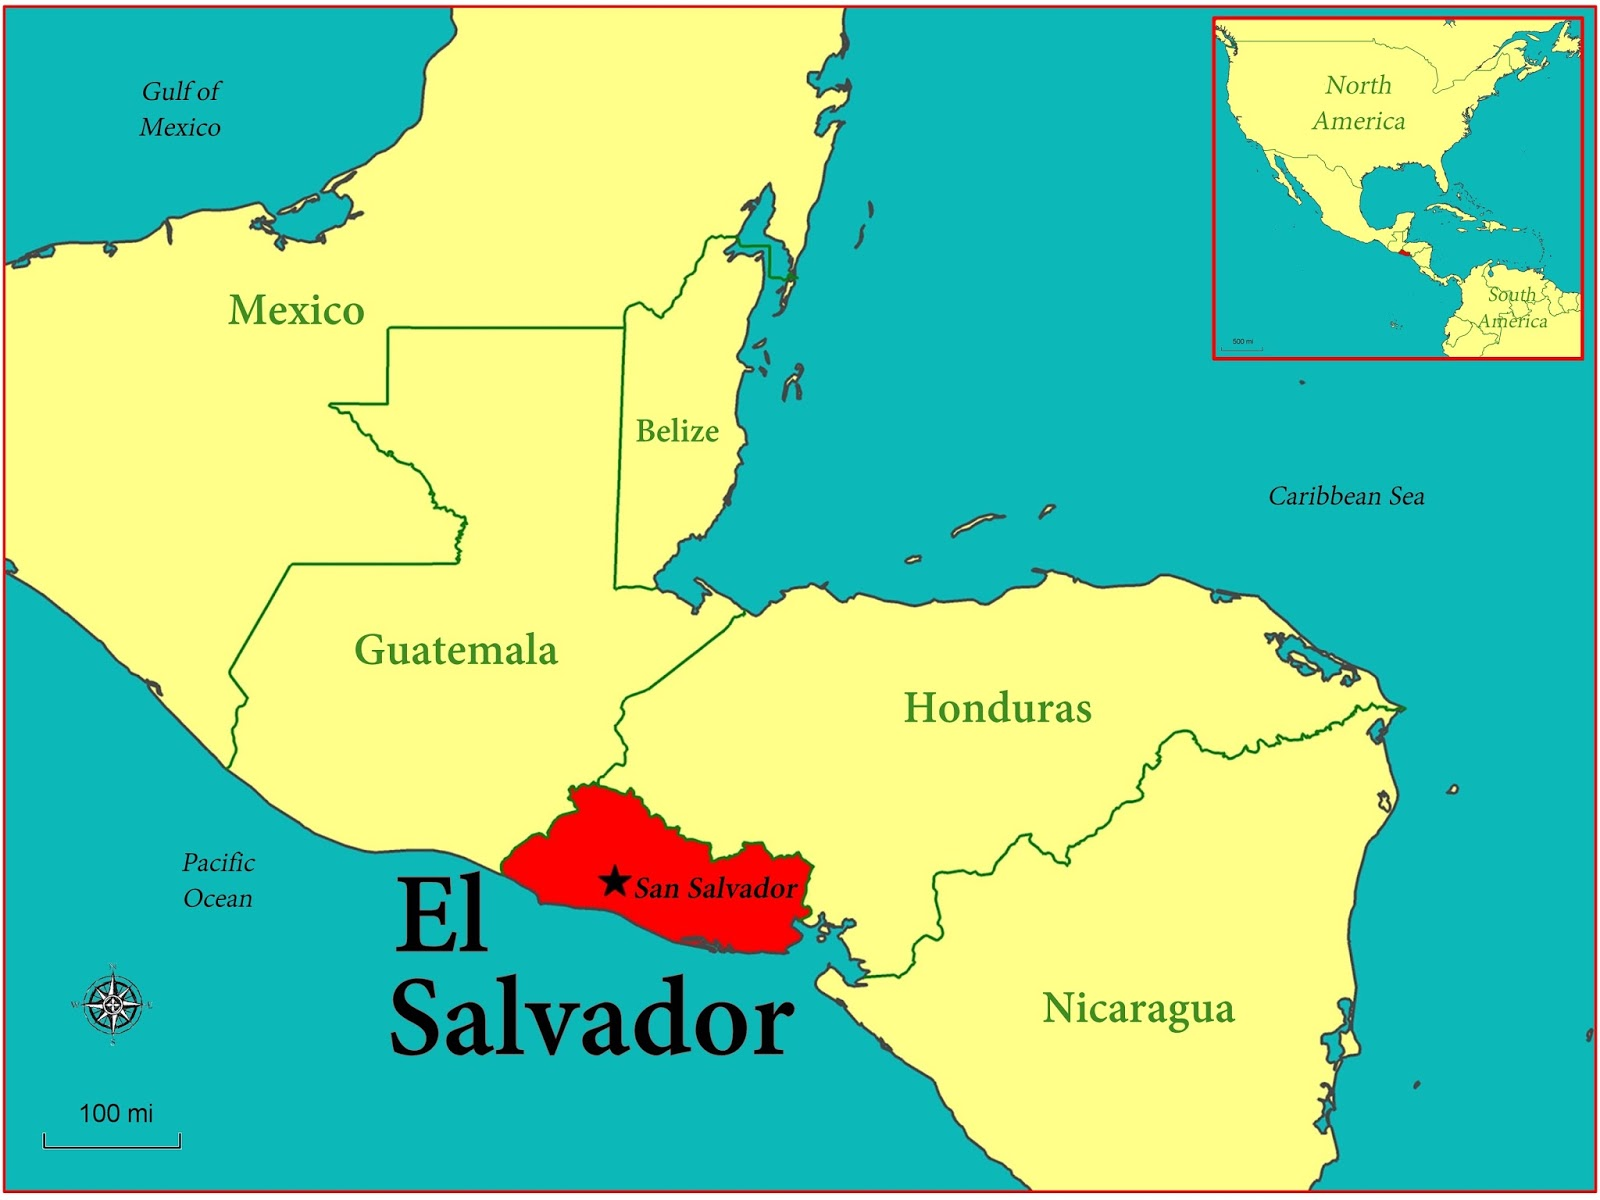 El Salvador On Map GIS Research and Map Collection: El Salvador and Immigration Maps  El Salvador On Map